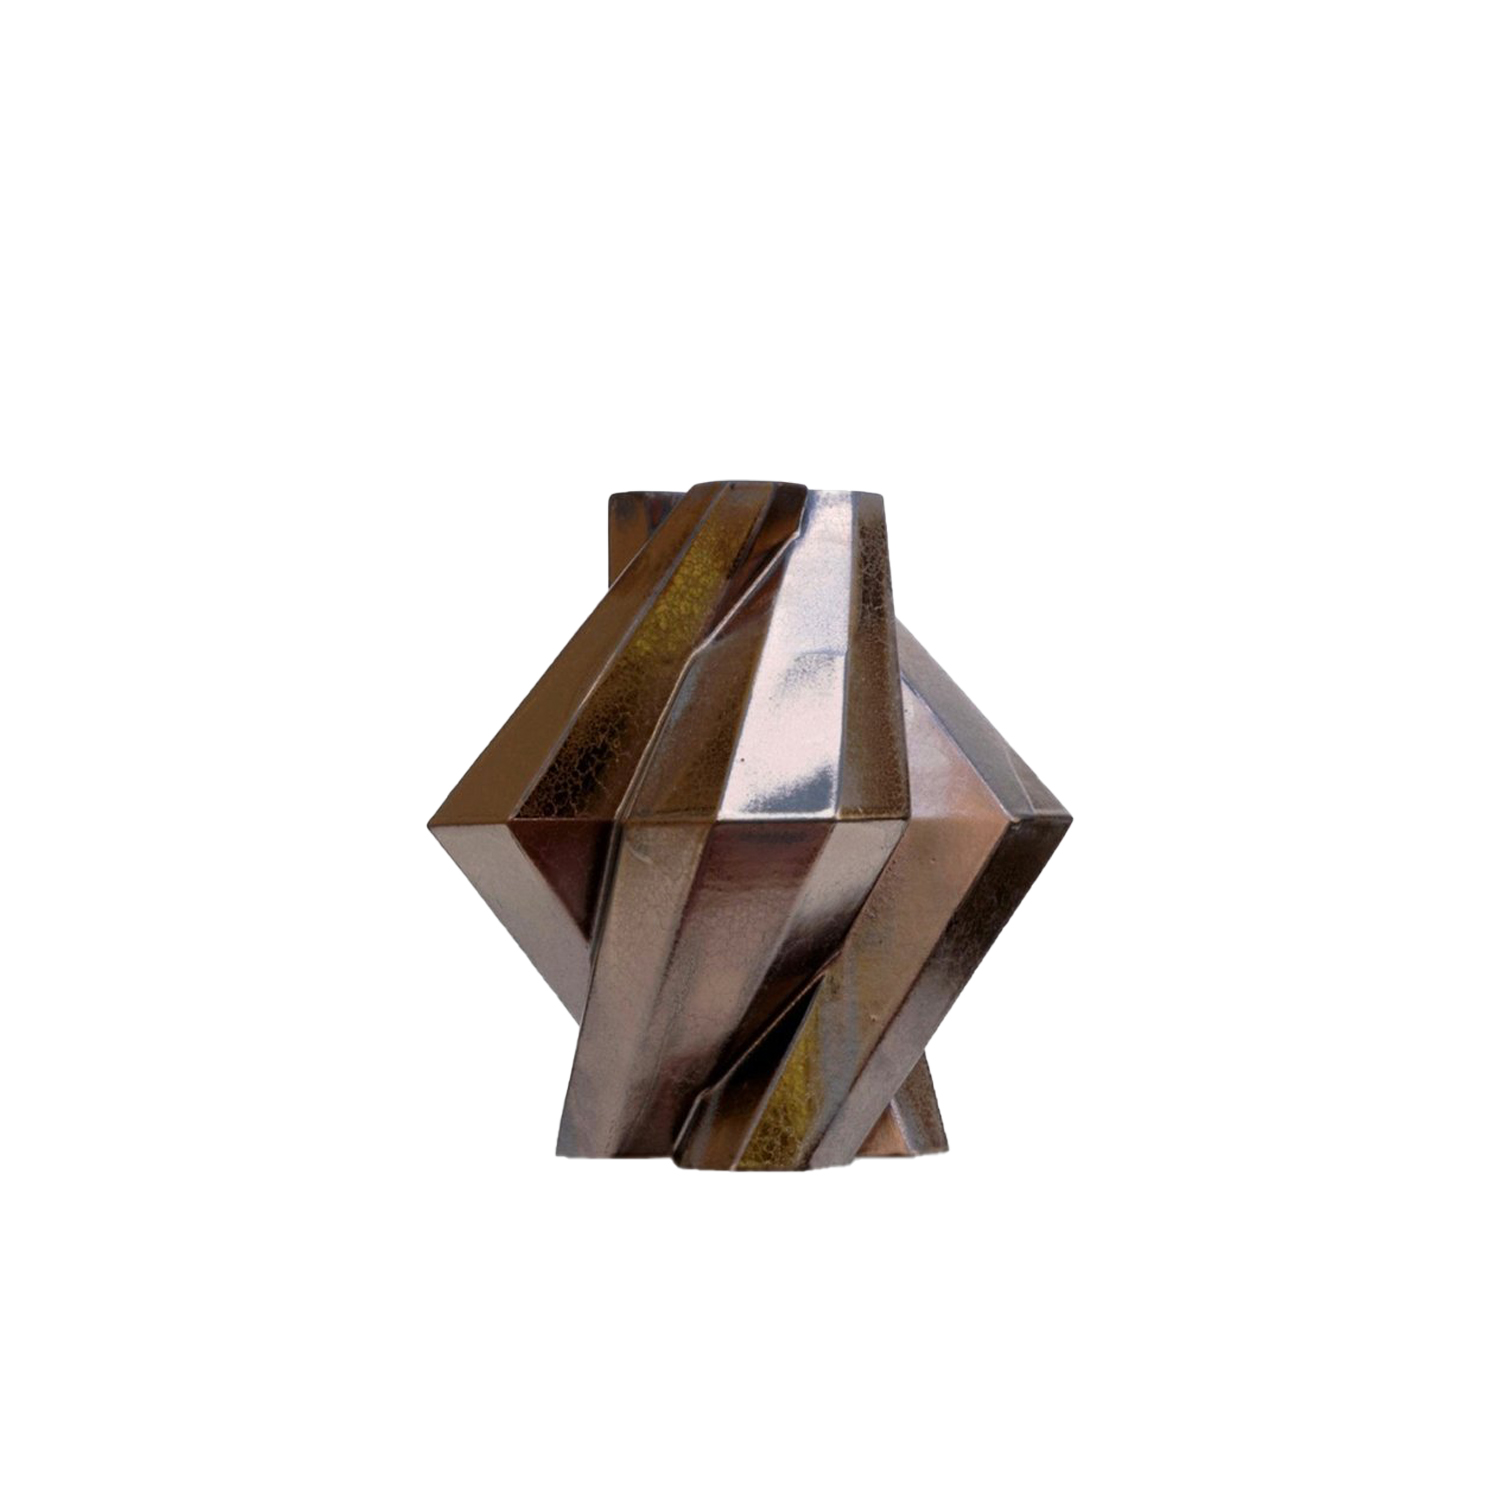 Fortress Pillar Vase Bronze - Designer Lara Bohinc explores the marriage of ancient and futuristic form in the new Fortress Vase range, which has created a more complex geometric and modern structure from the original inspiration of the octagonal towers at the Diocletian Palace in Croatia. The resulting hexagonal blocks interlock and embrace to allow the play of light and shade on the many surfaces and angles. These are handmade from ceramic in a small Italian artisanal workshop and come in different finishes.  | Matter of Stuff